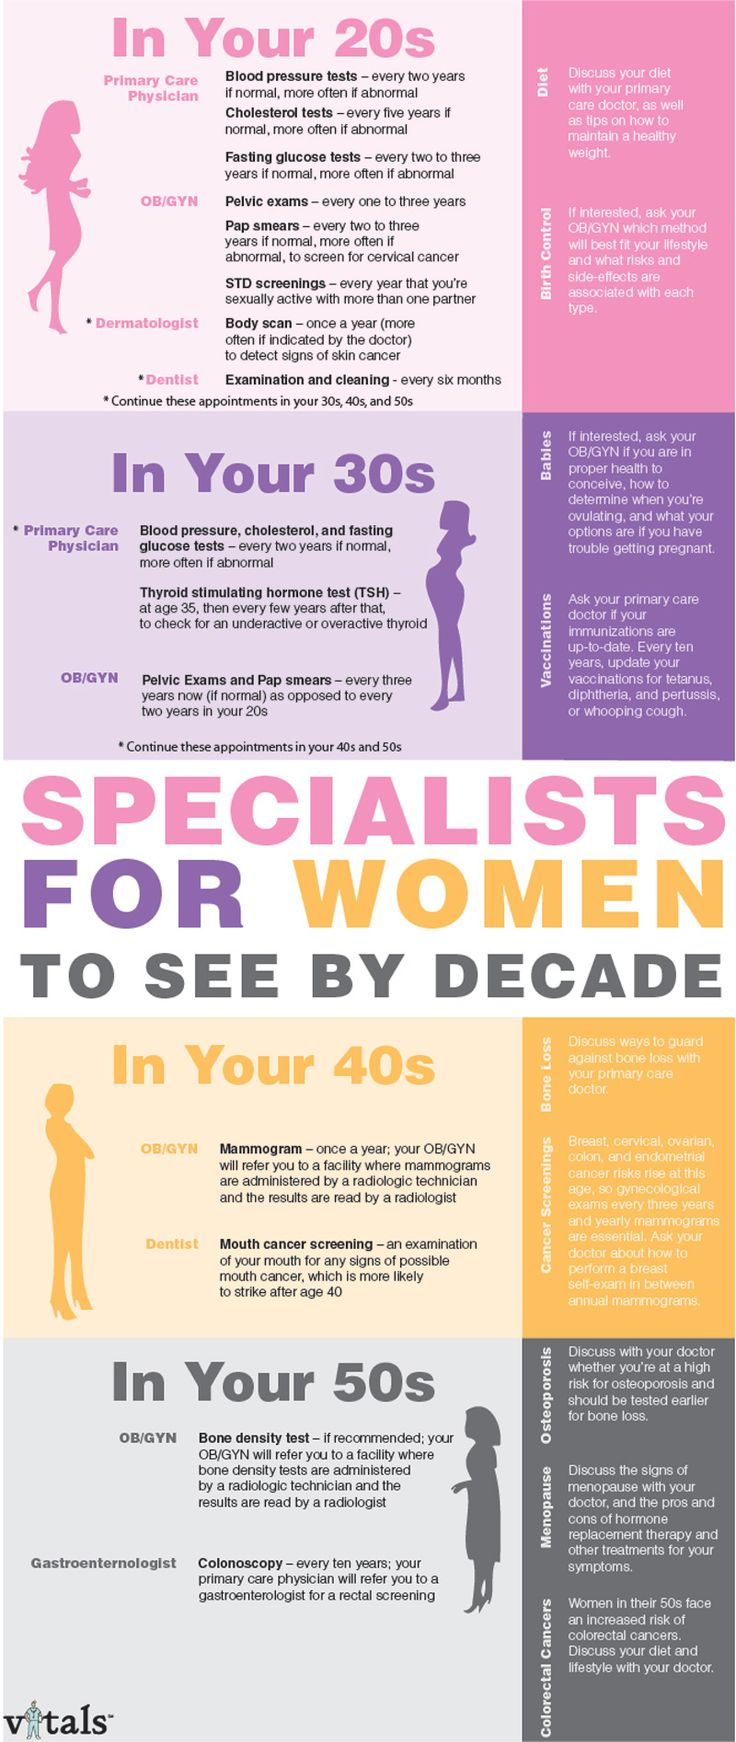 Women's Health: Specialists for women to see by demographic age. Evidently, women aren't expected to live past their 50s...